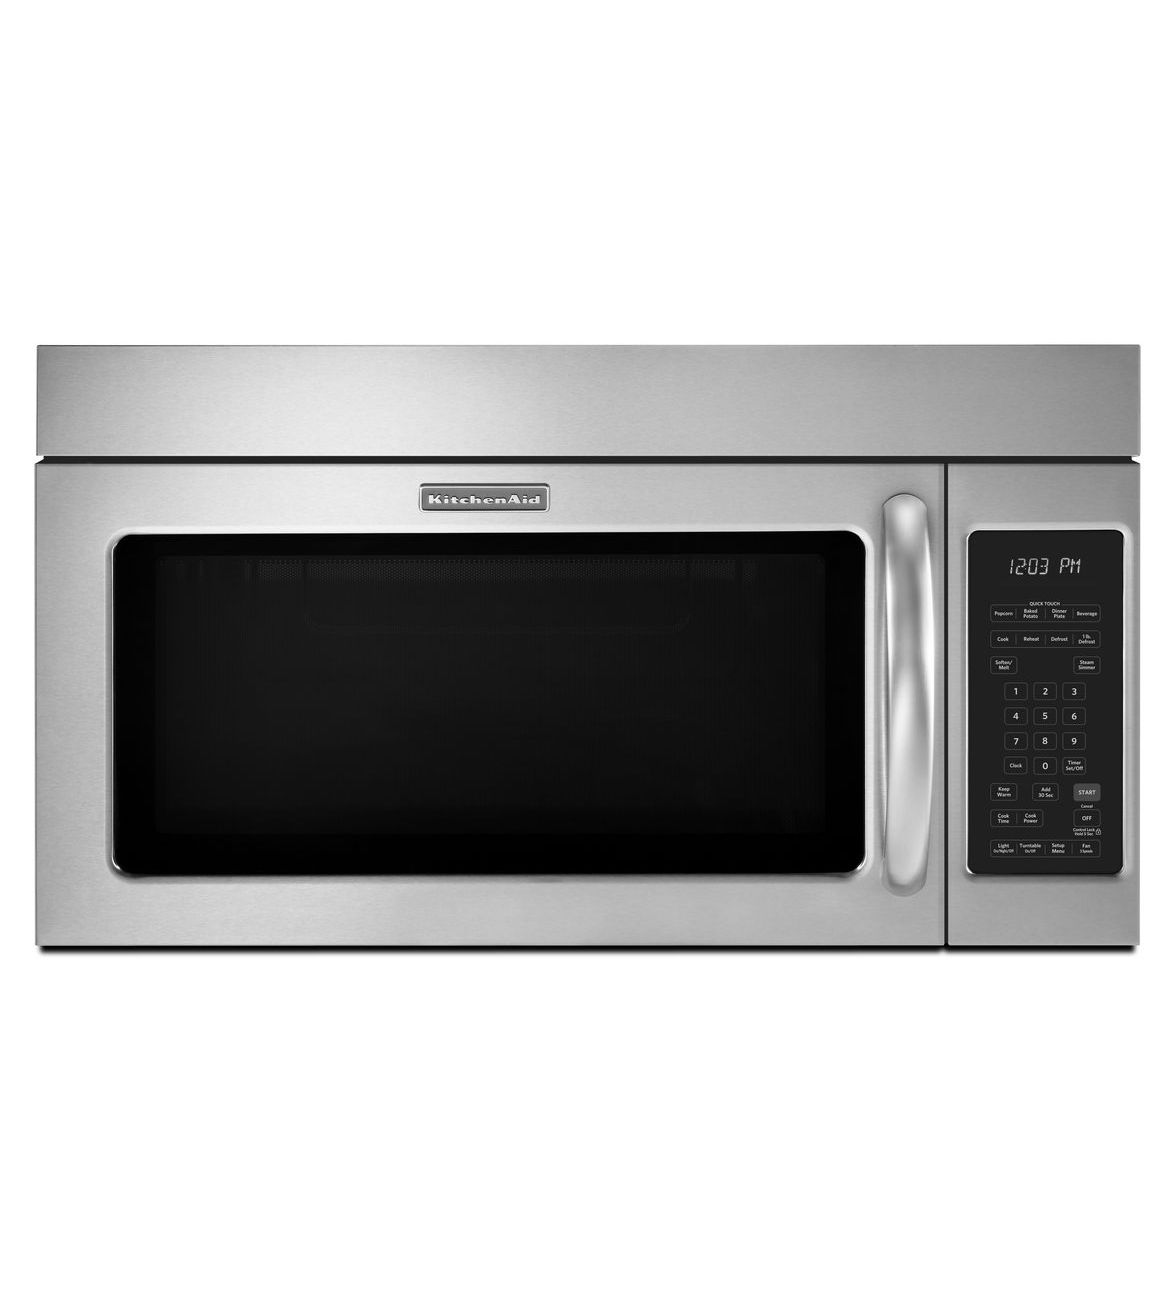 Major Liances Microwaves